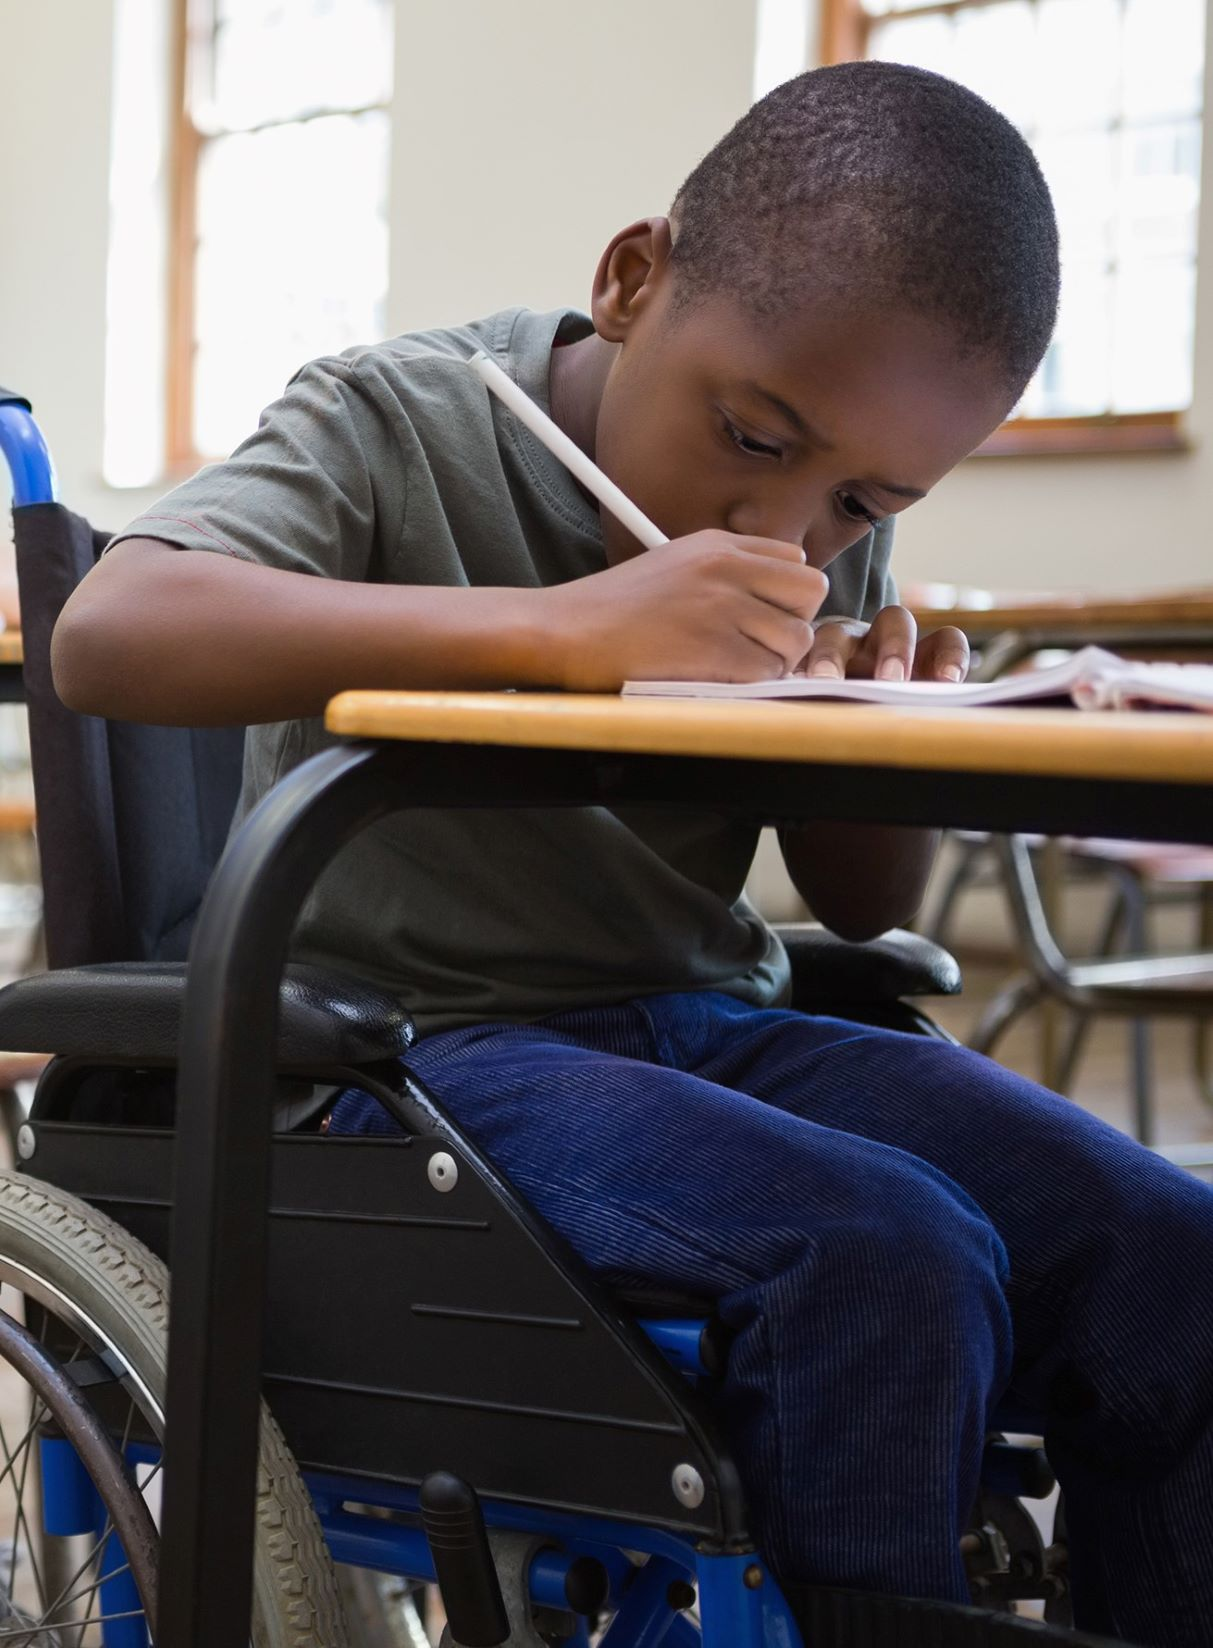 Equipment for Children with Disabilities